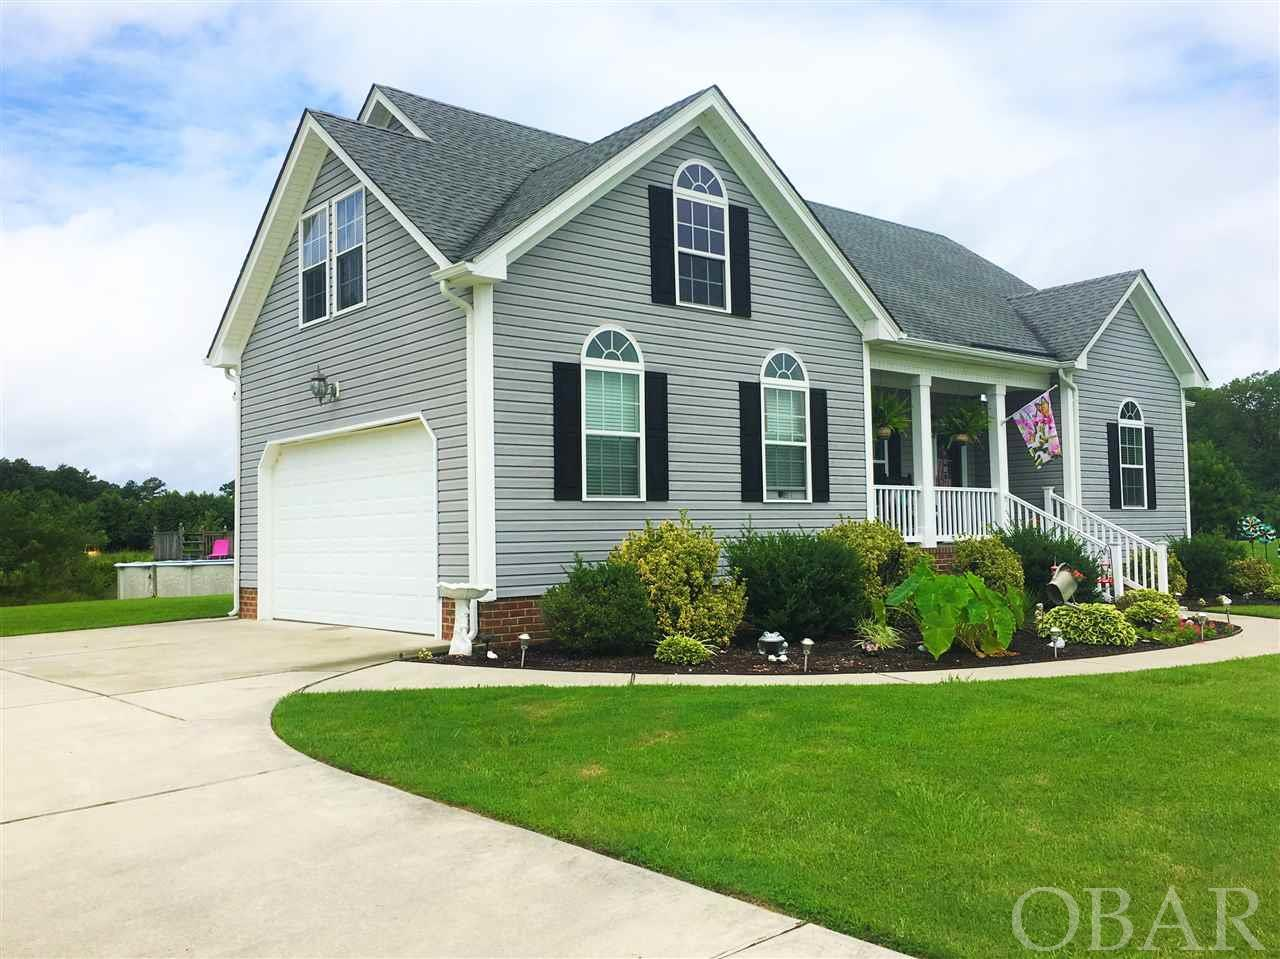 111 New Colony Drive,Moyock,NC 27958,4 Bedrooms Bedrooms,3 BathroomsBathrooms,Residential,New Colony Drive,101438